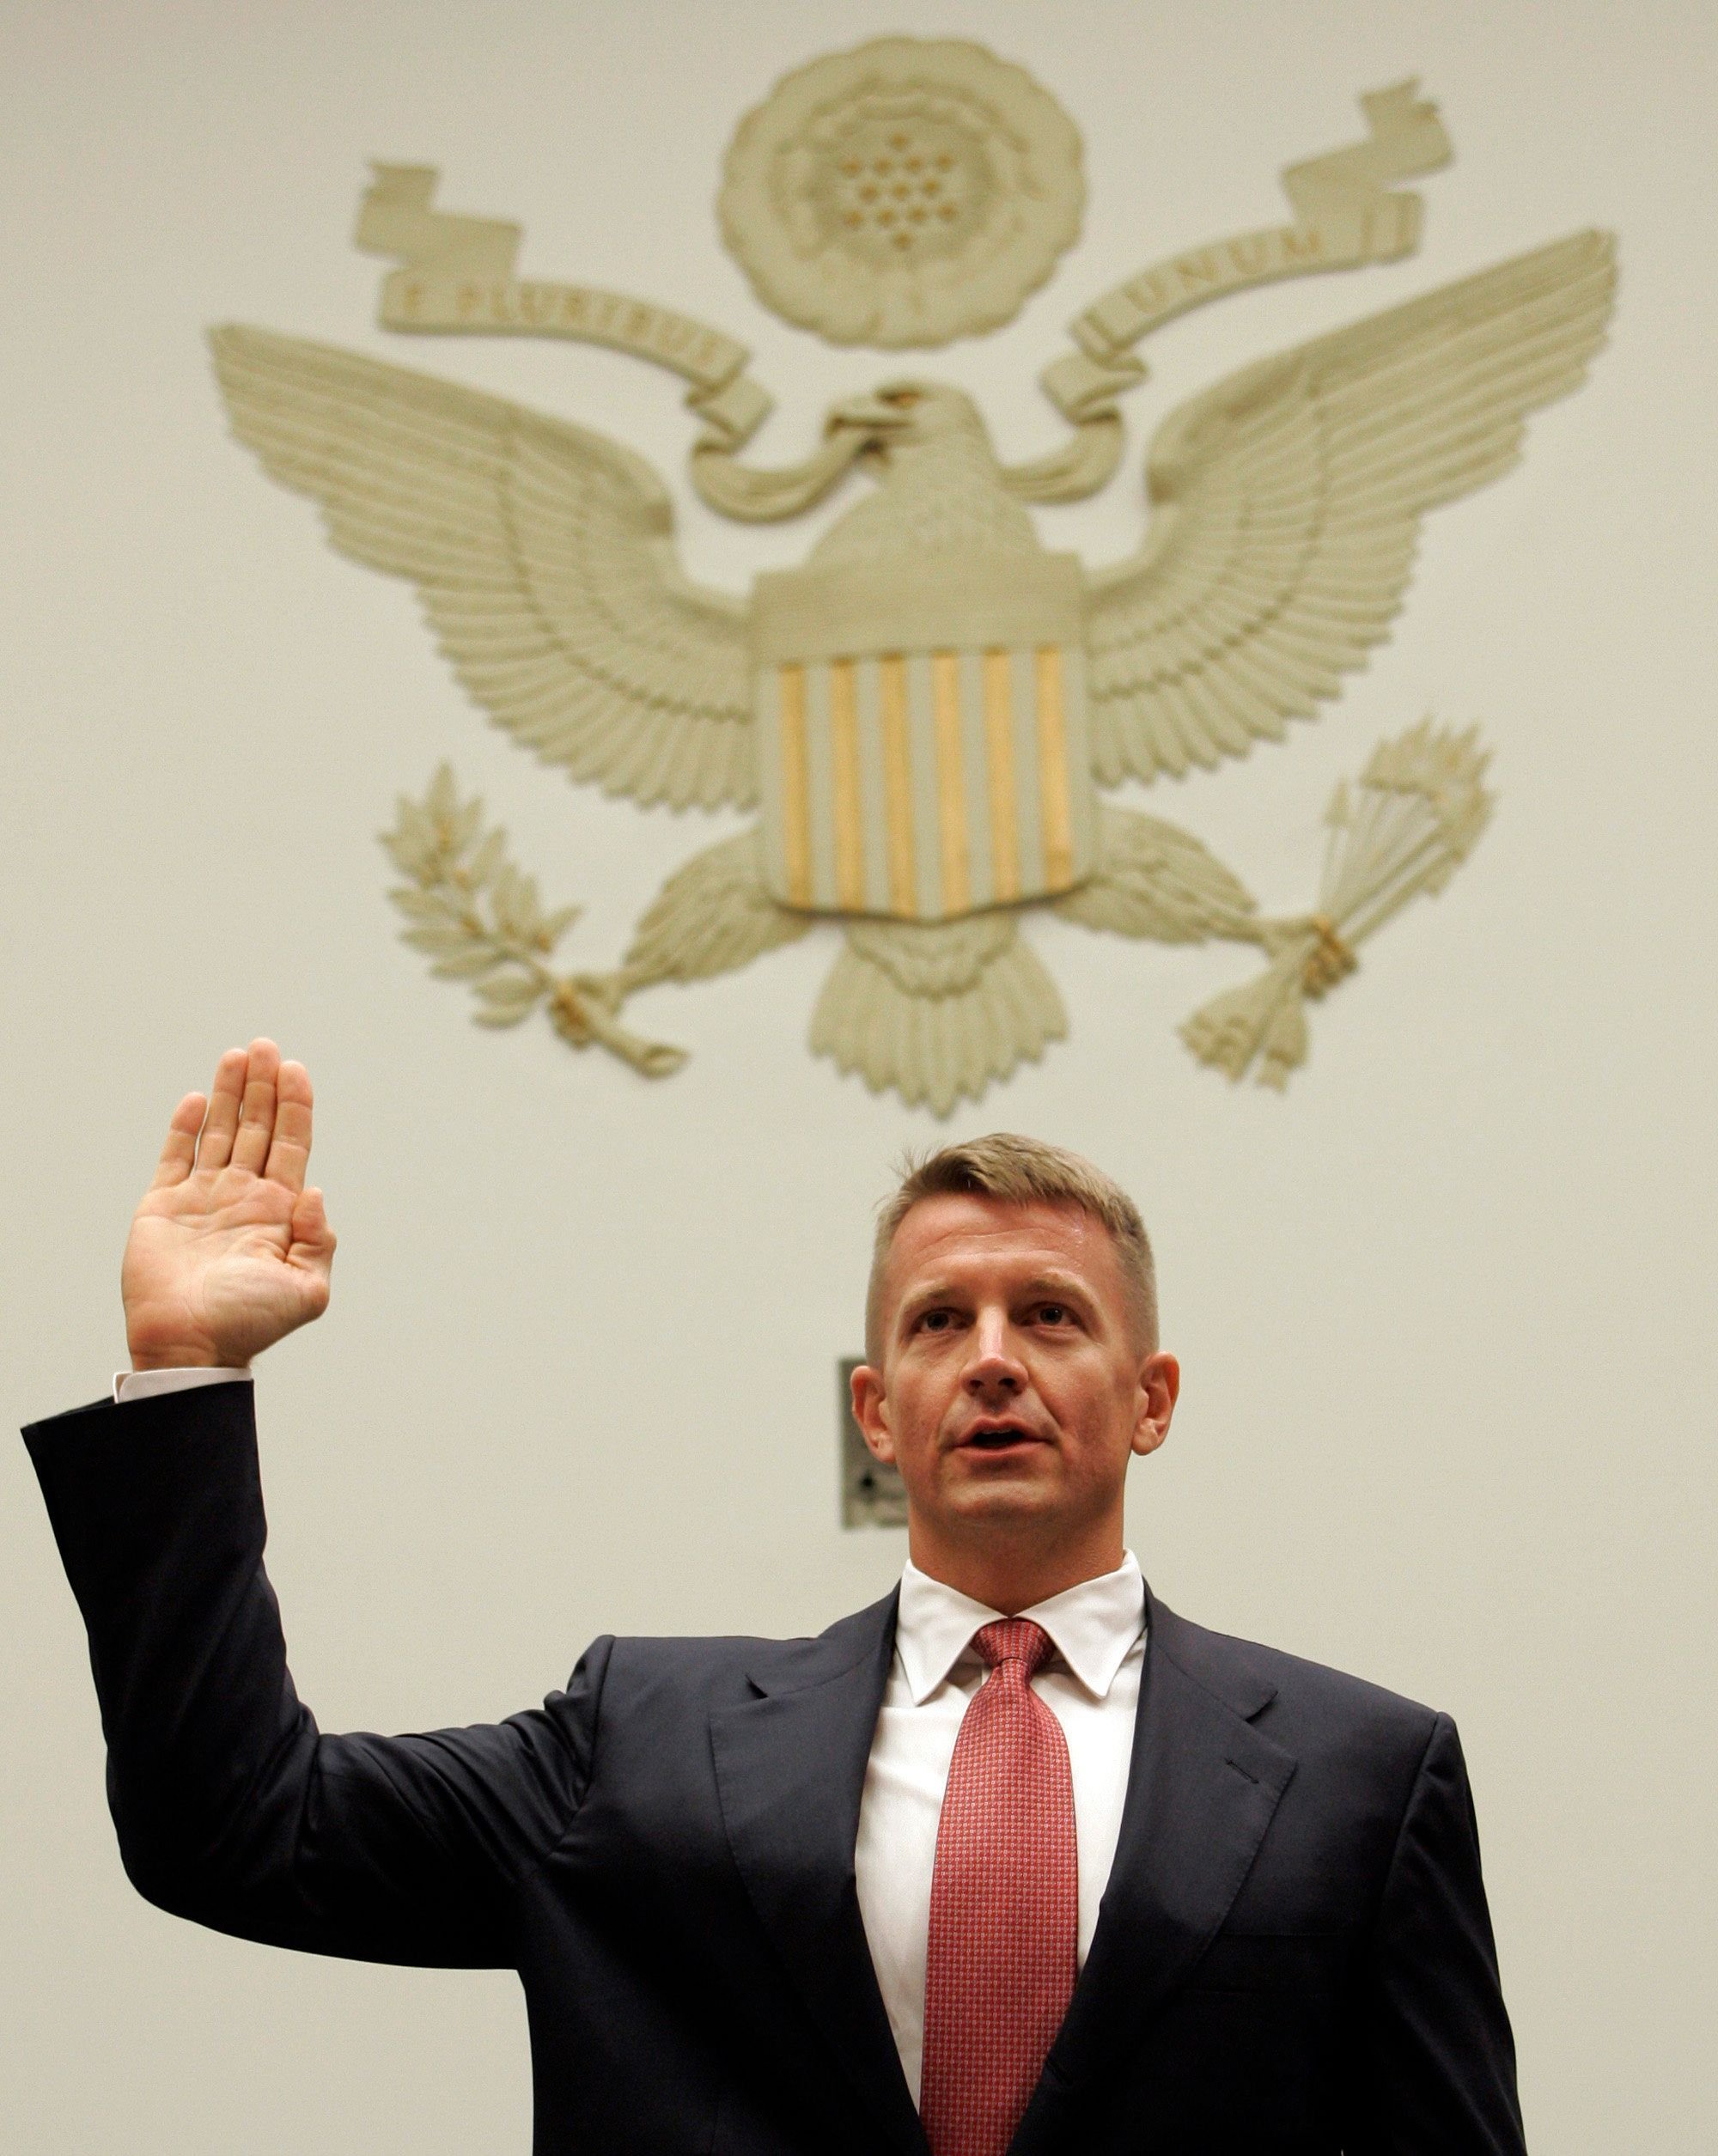 """<a href=""""https://www.huffpost.com/news/topic/erik-prince"""" target=""""_blank"""">Erik Prince</a>now claims he testified that&n"""